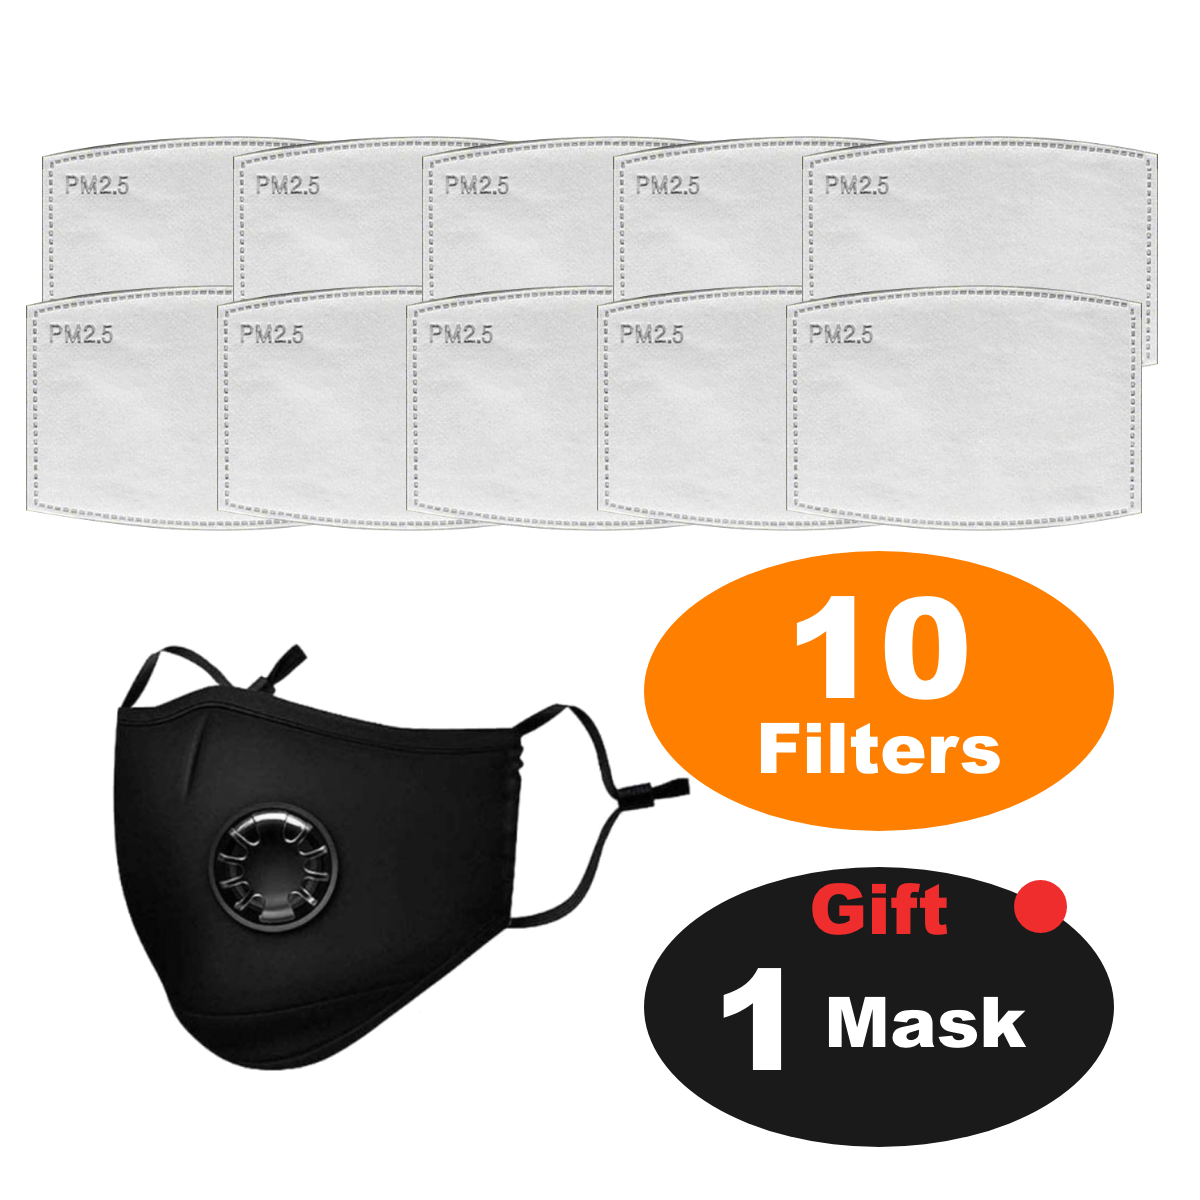 VITAENEN 10Pieces +1,Filter boxed dust-proof haze pm2. 5,Can be exchanged for filter adult filter core,Activated Carbon Filter Face cover Breathing Insert Anti Haze Mouth cover Filters